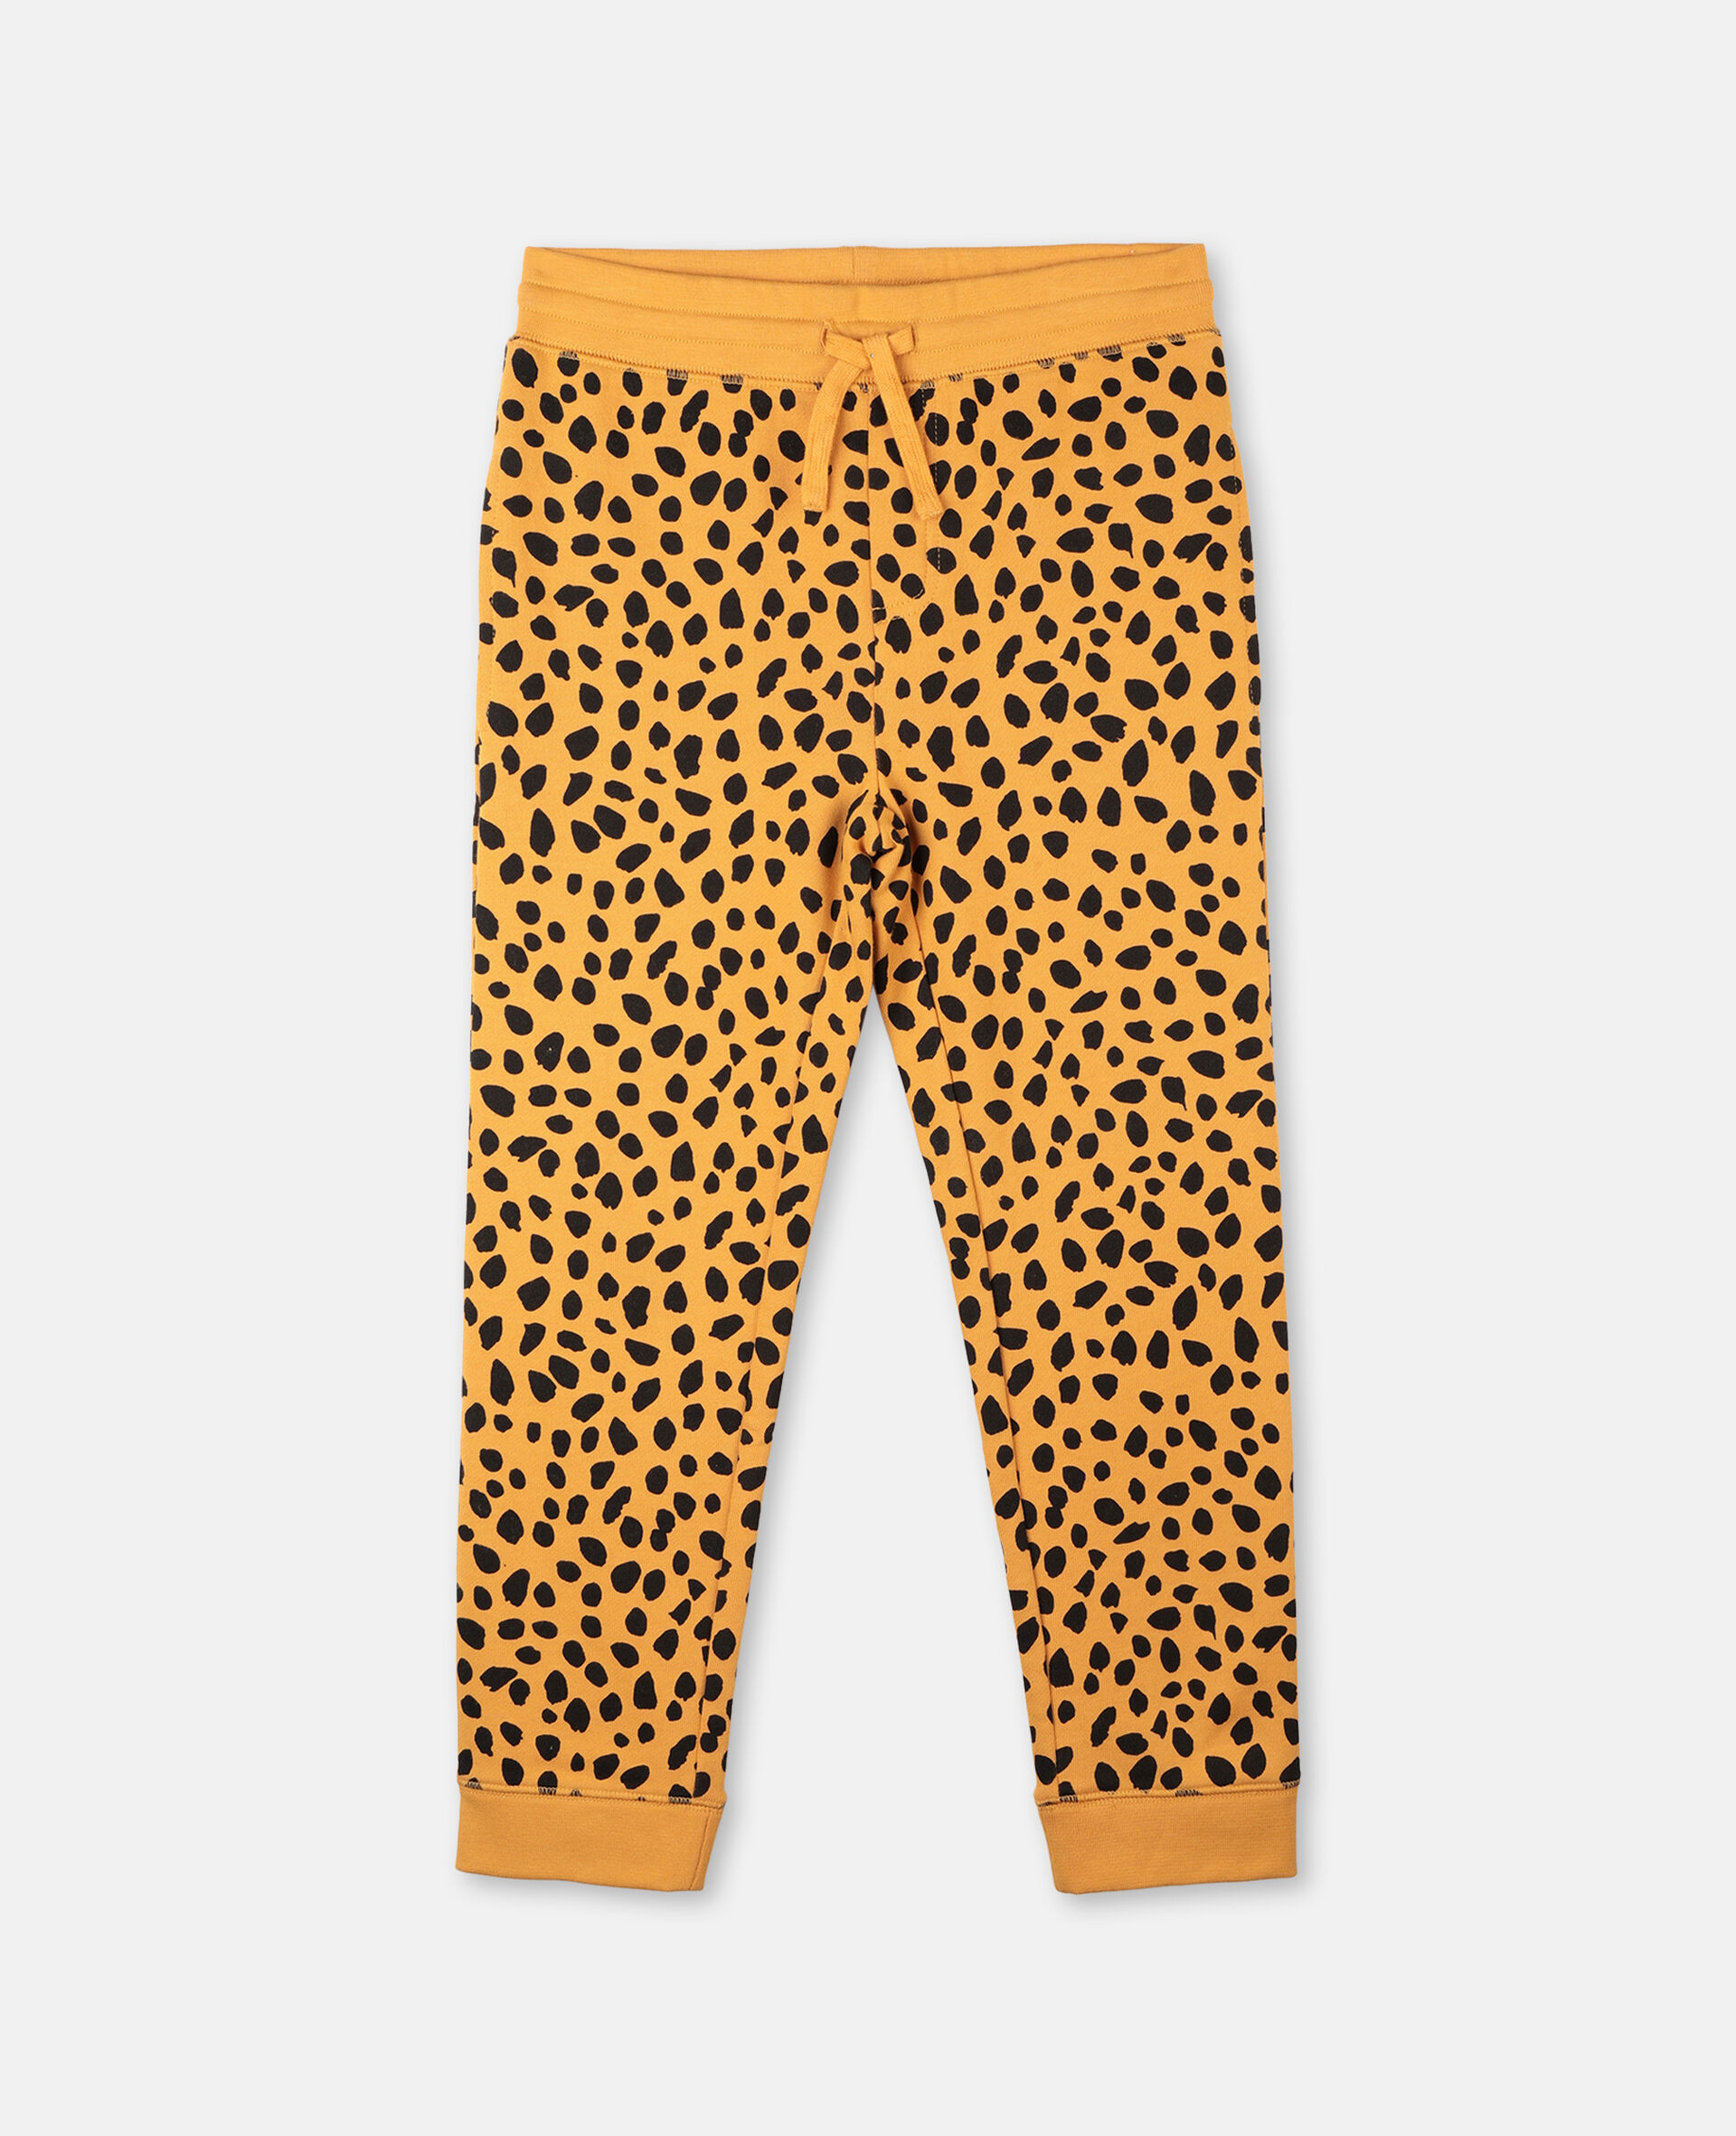 Cheetah Dots Cotton Joggers  -Multicolour-large image number 0